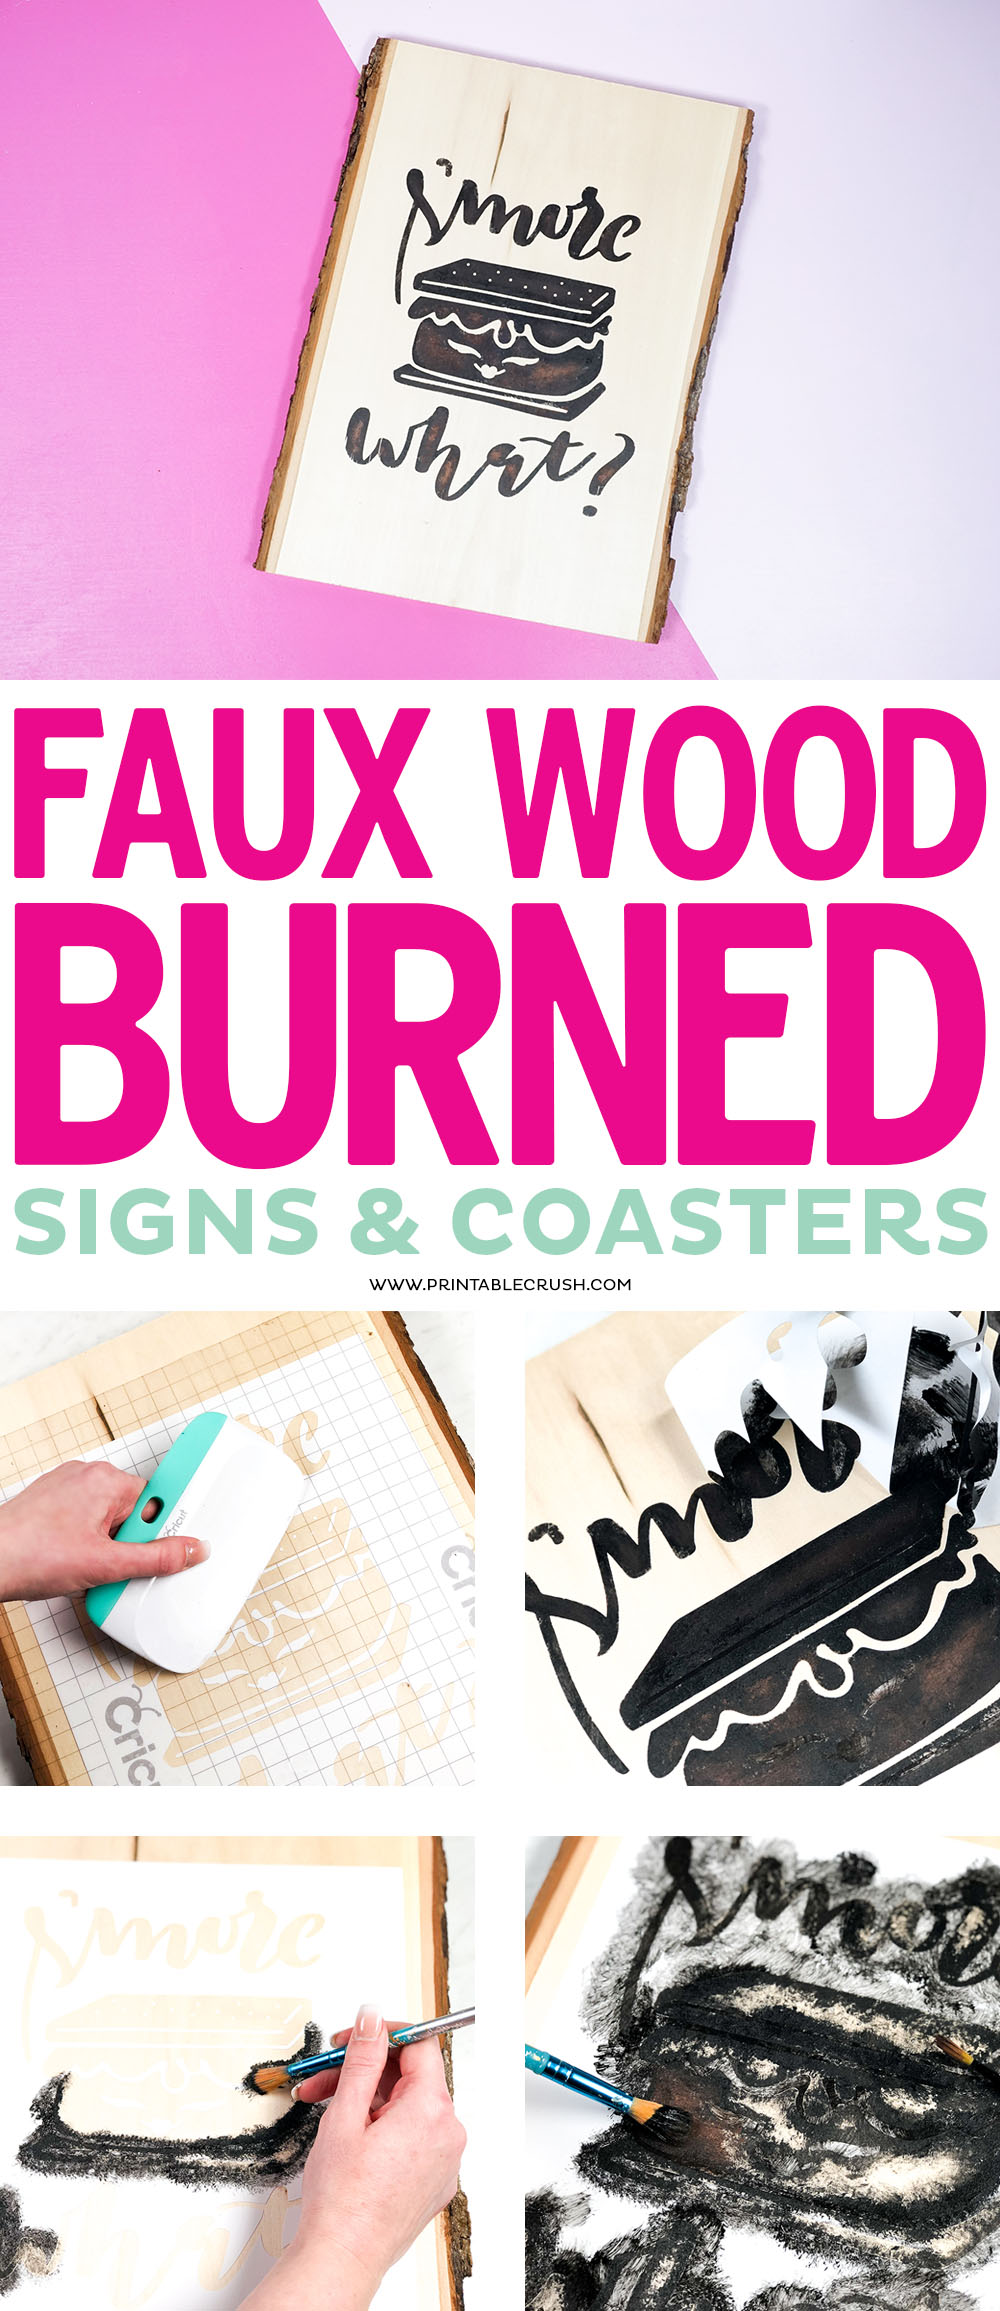 Create a realistic faux wood burned sign with matching coasters with this super easy painting technique.